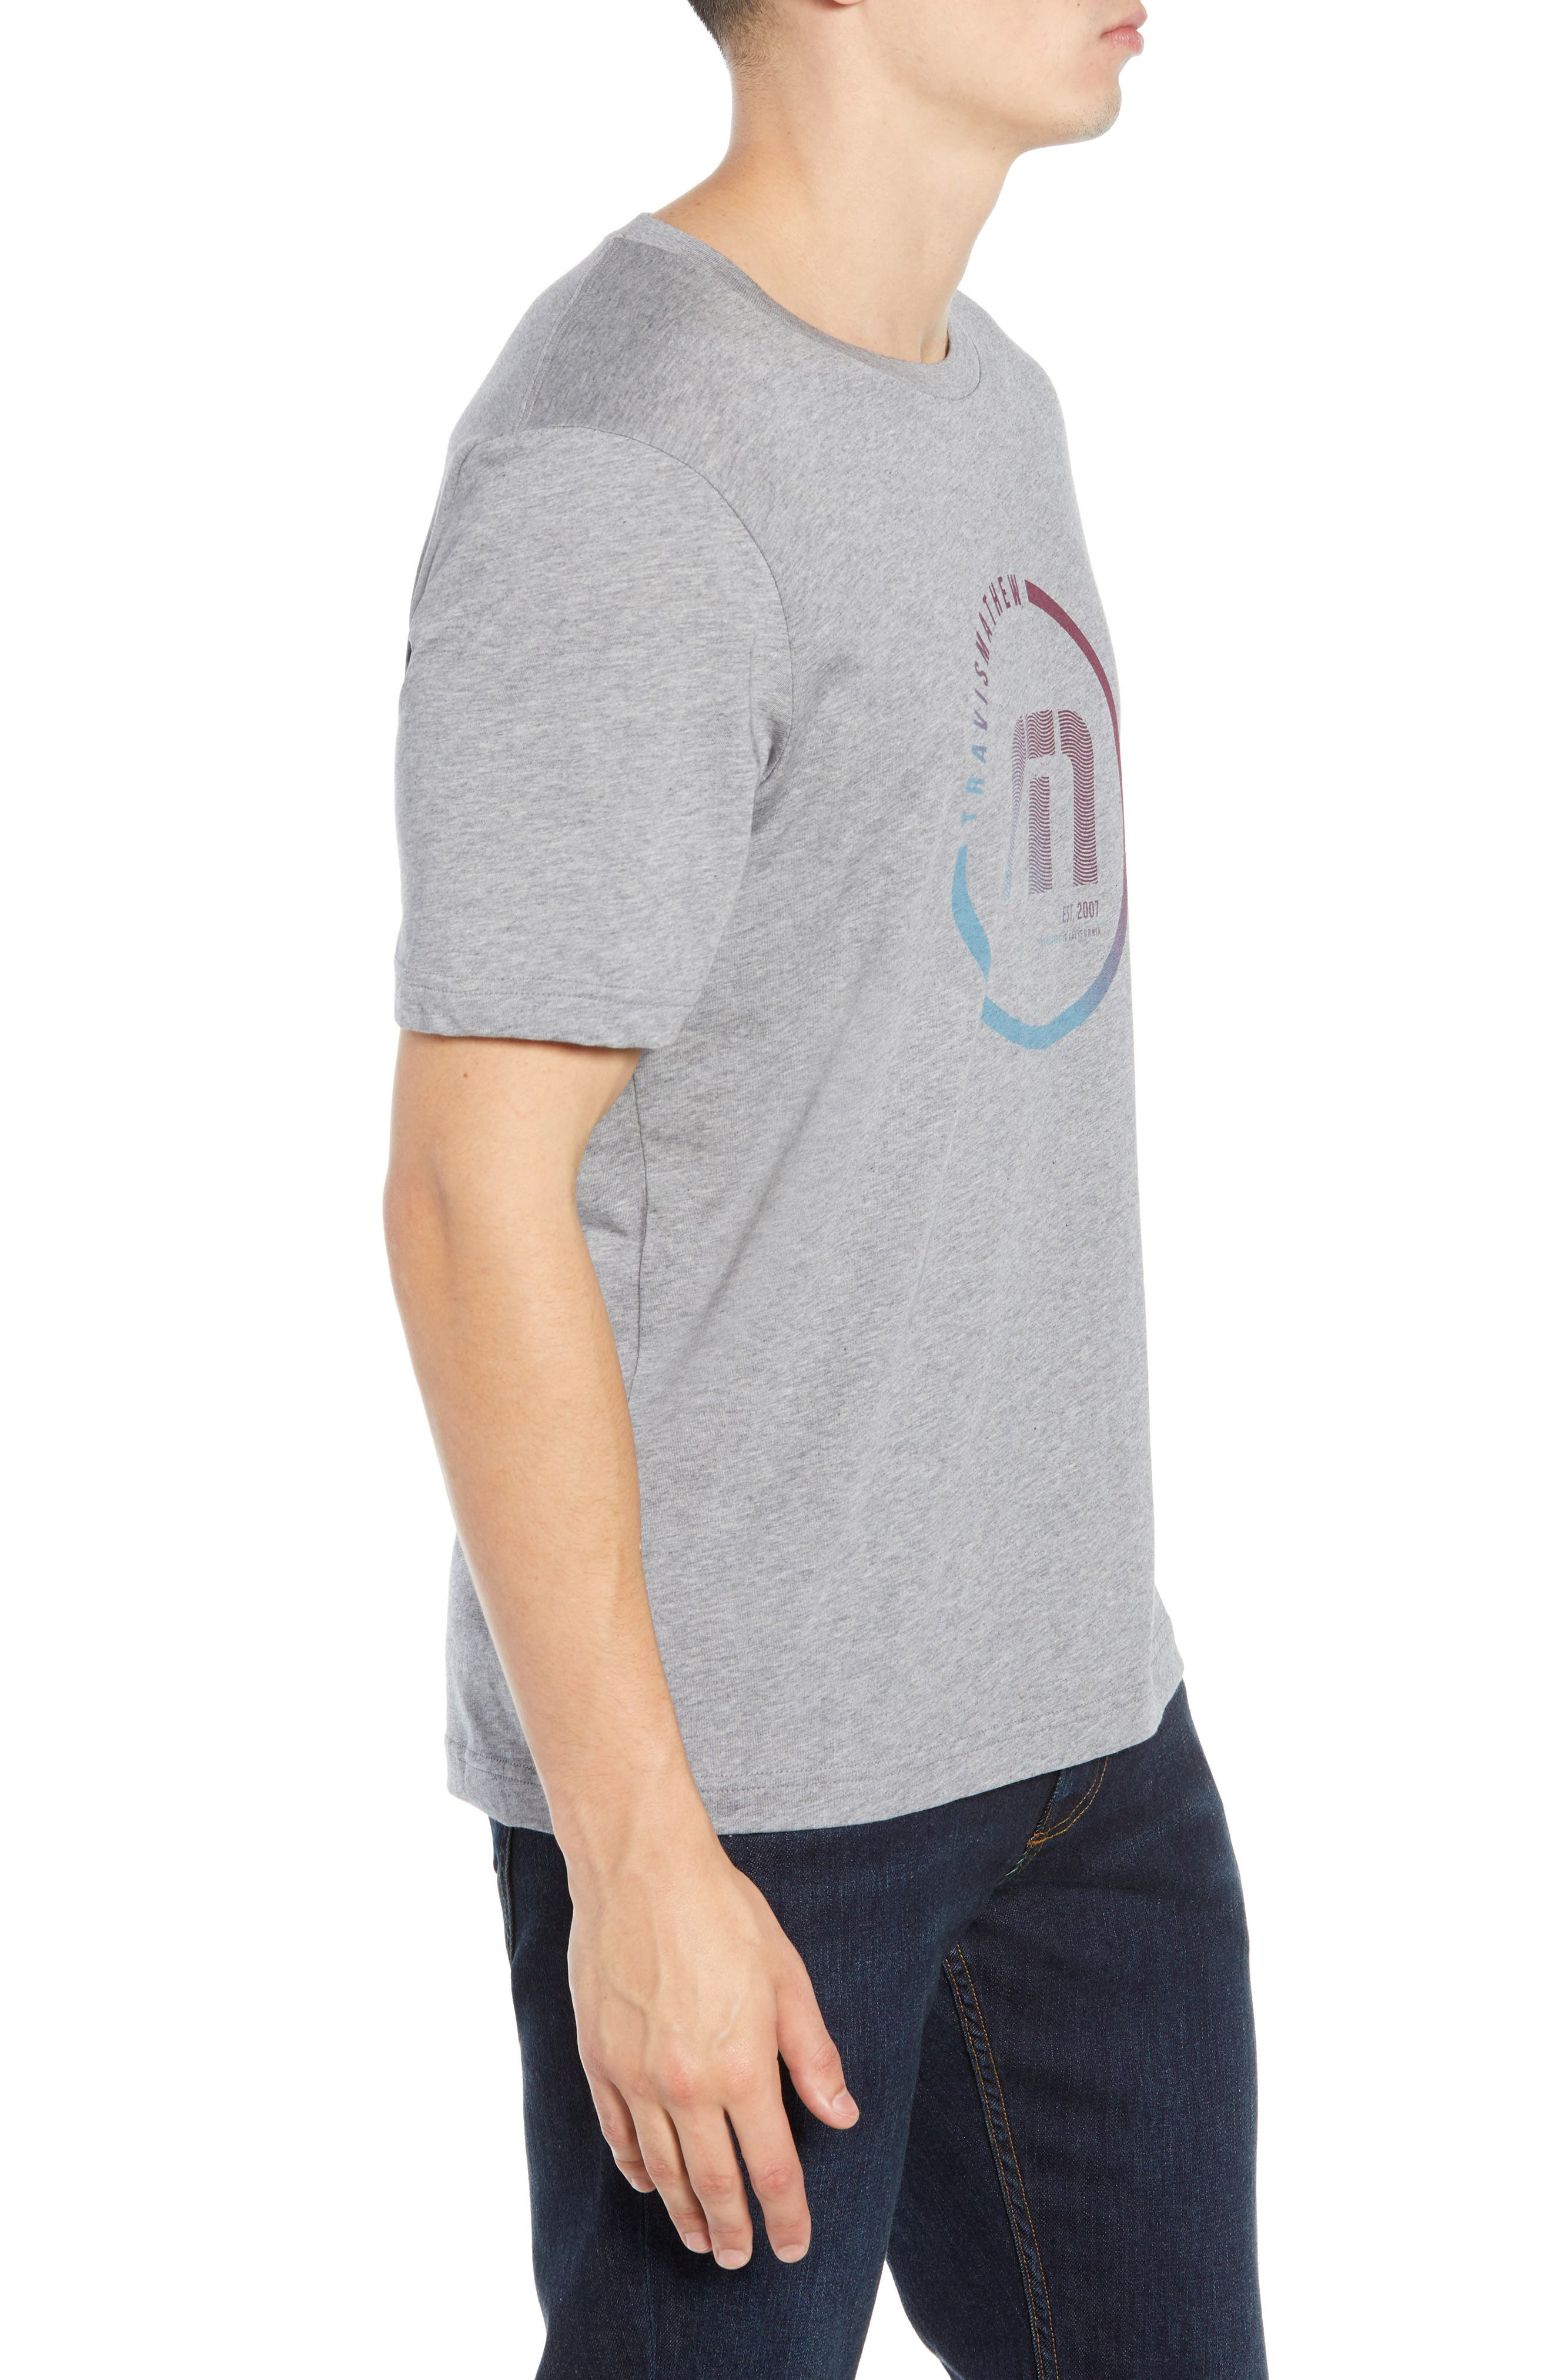 Airheads T-Shirt,                             Alternate thumbnail 3, color,                             HEATHER GREY